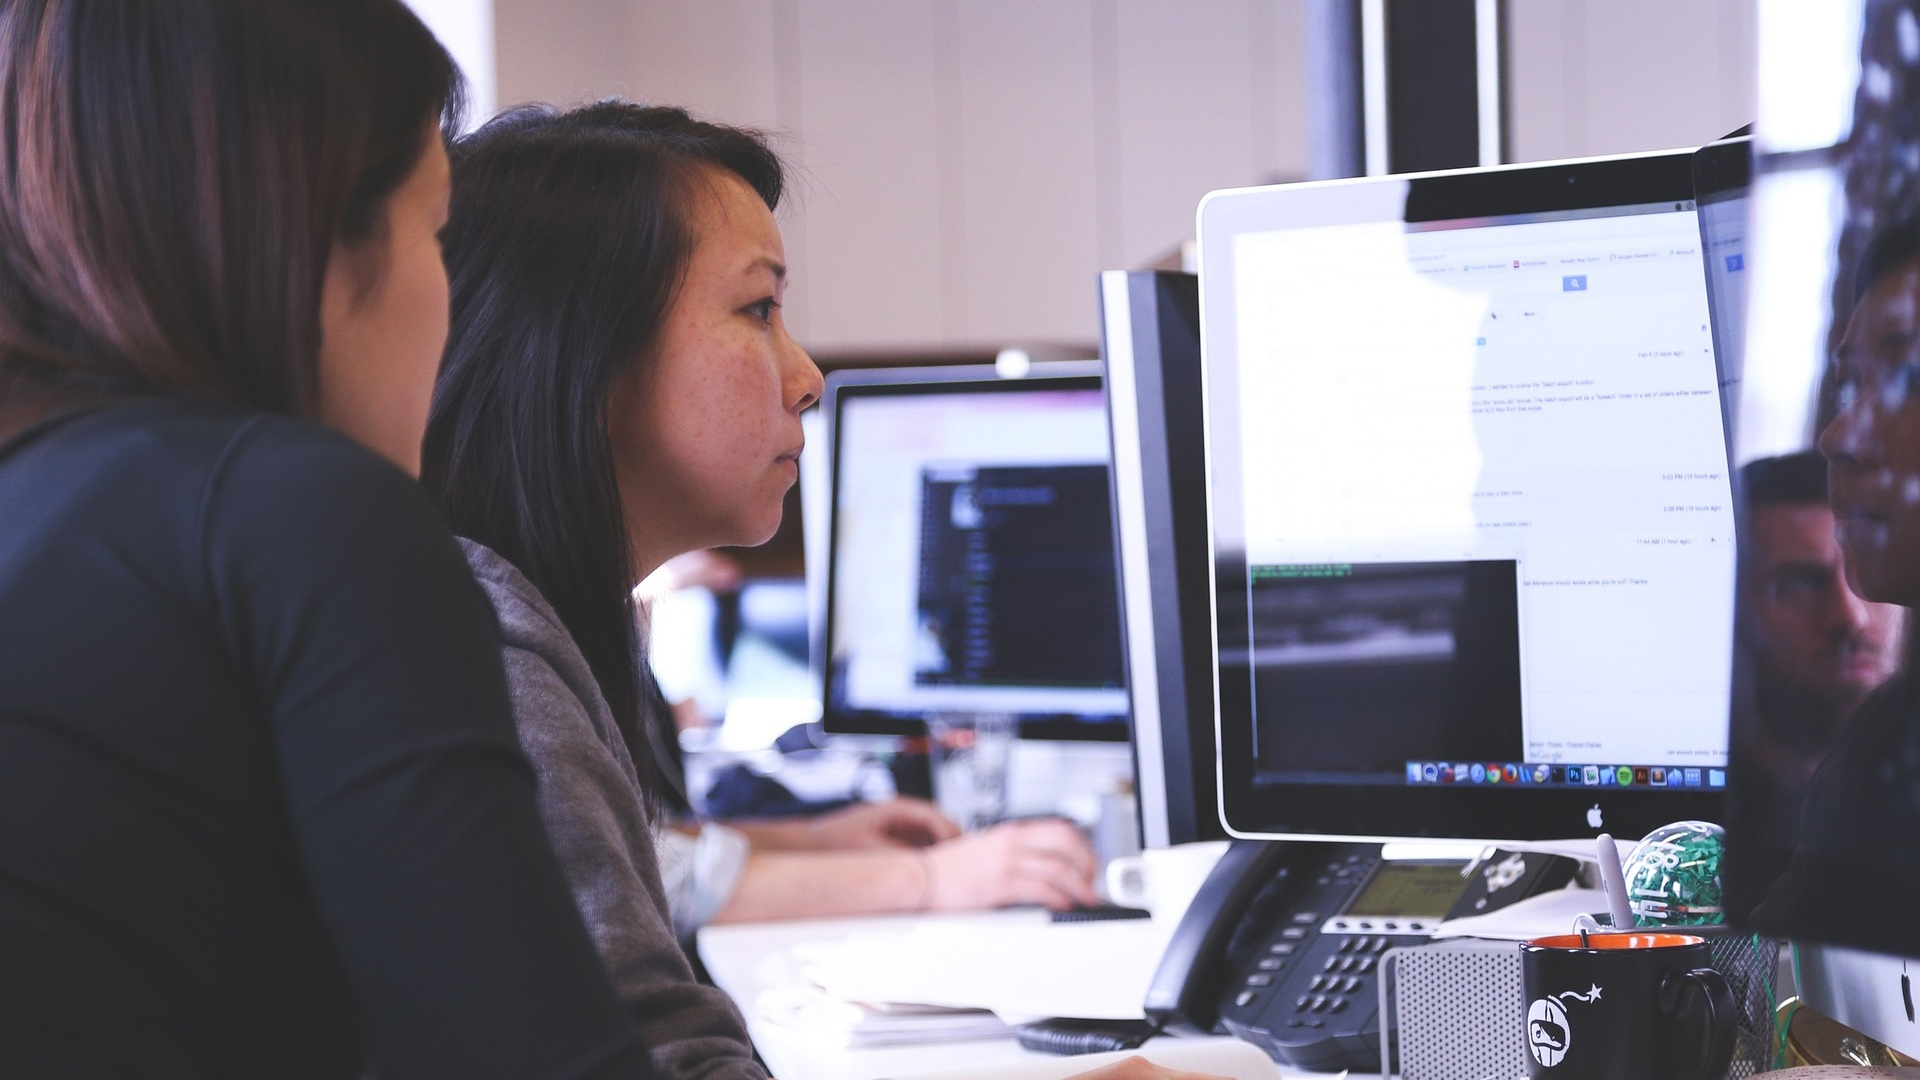 EU countries work to improve the role of women in digital sectors